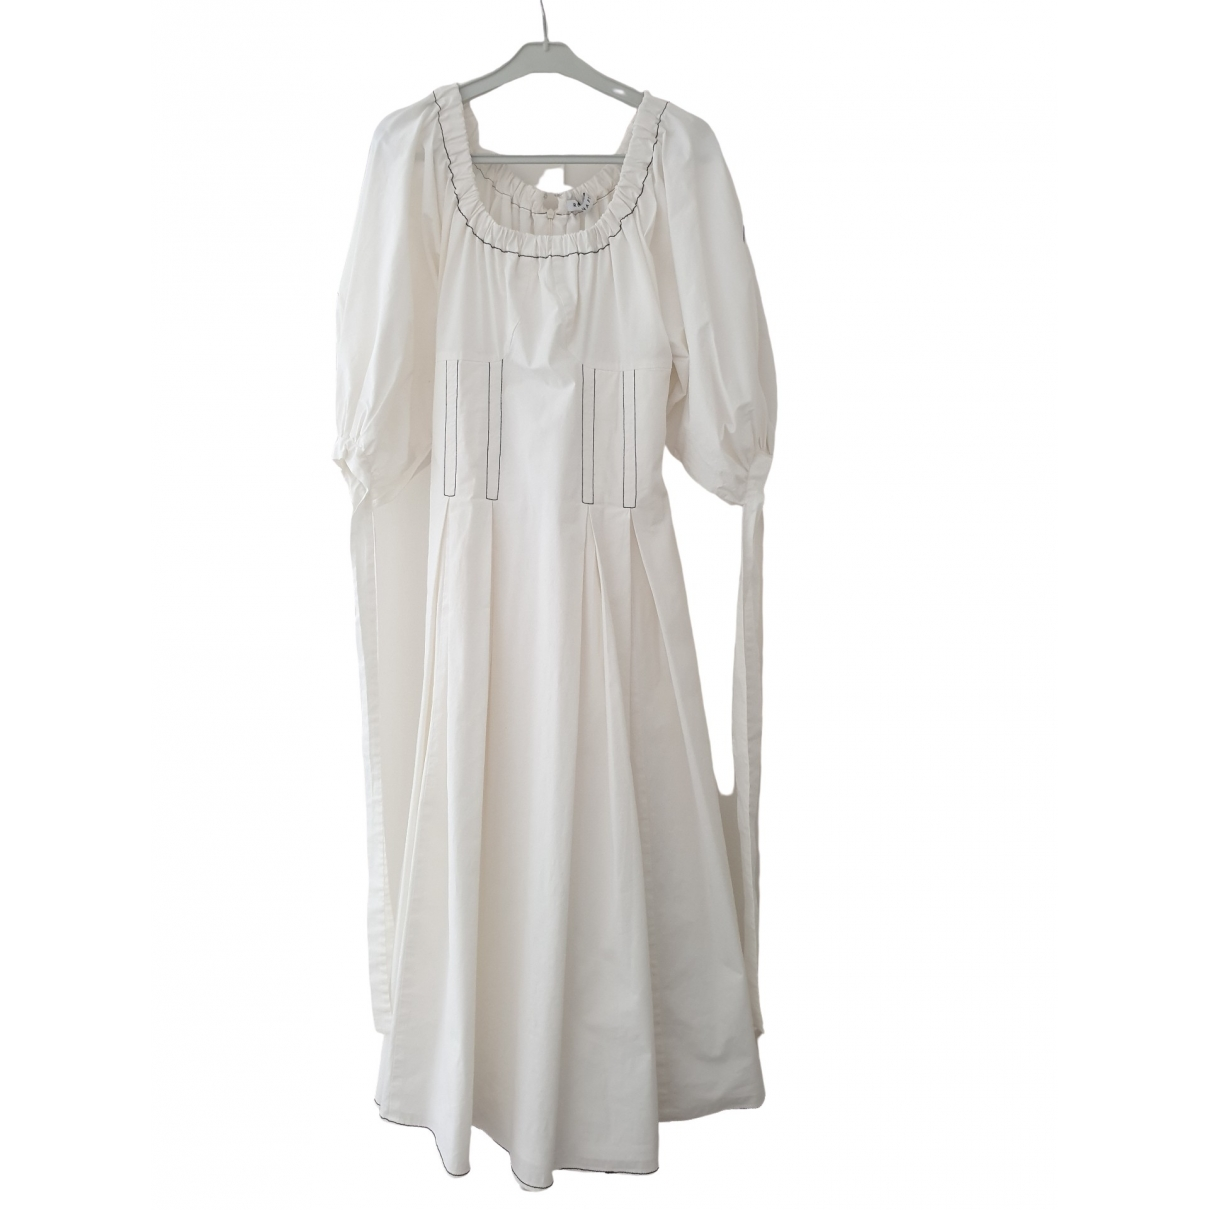 Rejina Pyo \N White Cotton dress for Women 10 UK